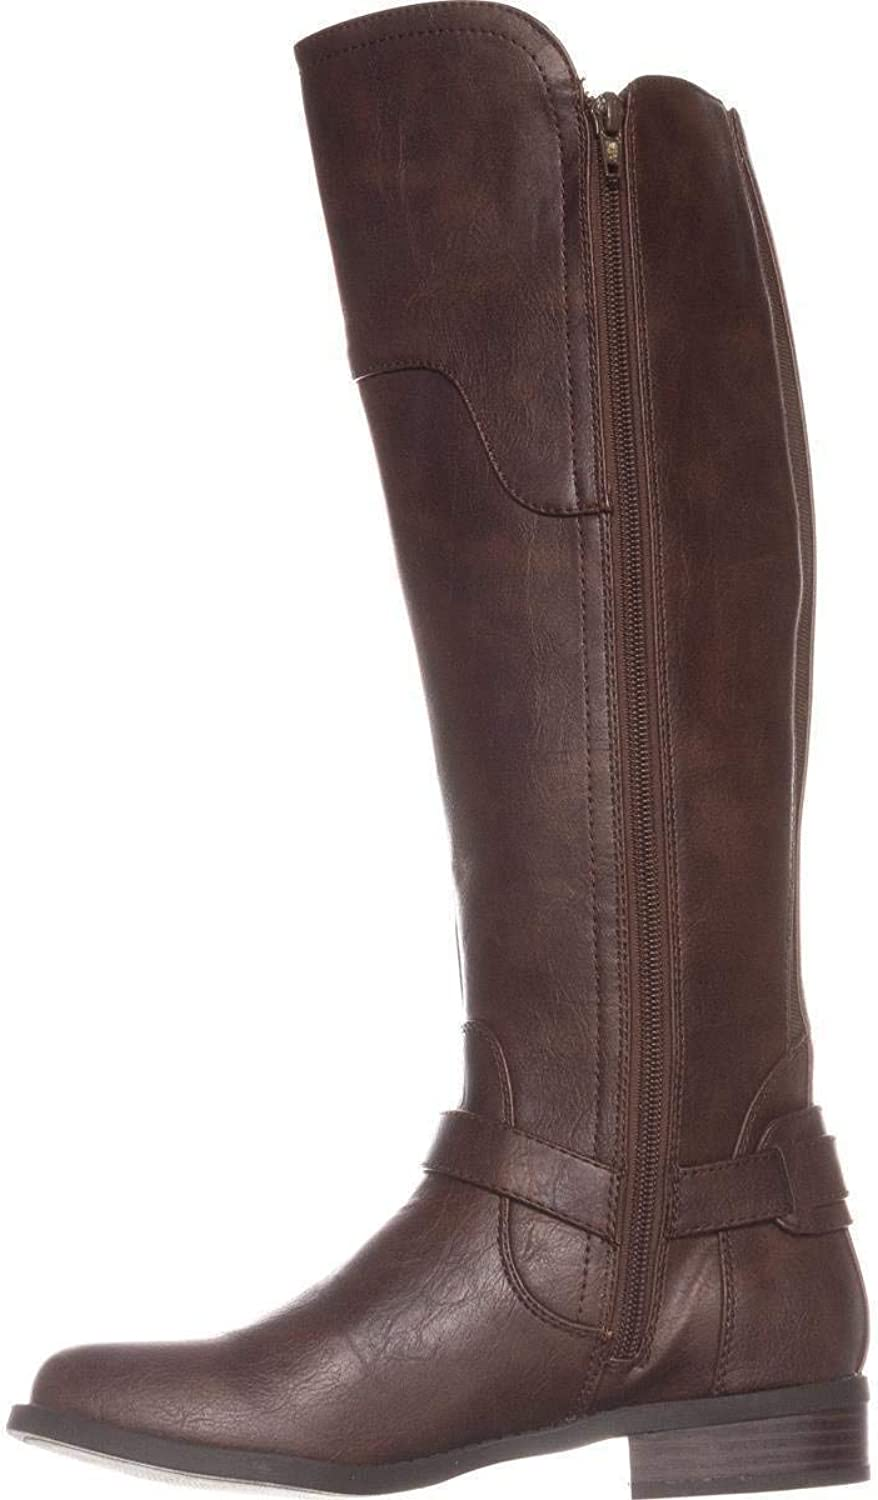 G By Guess Womens Harson Closed Toe Knee High Fashion Boots, Brown, Size 9.0